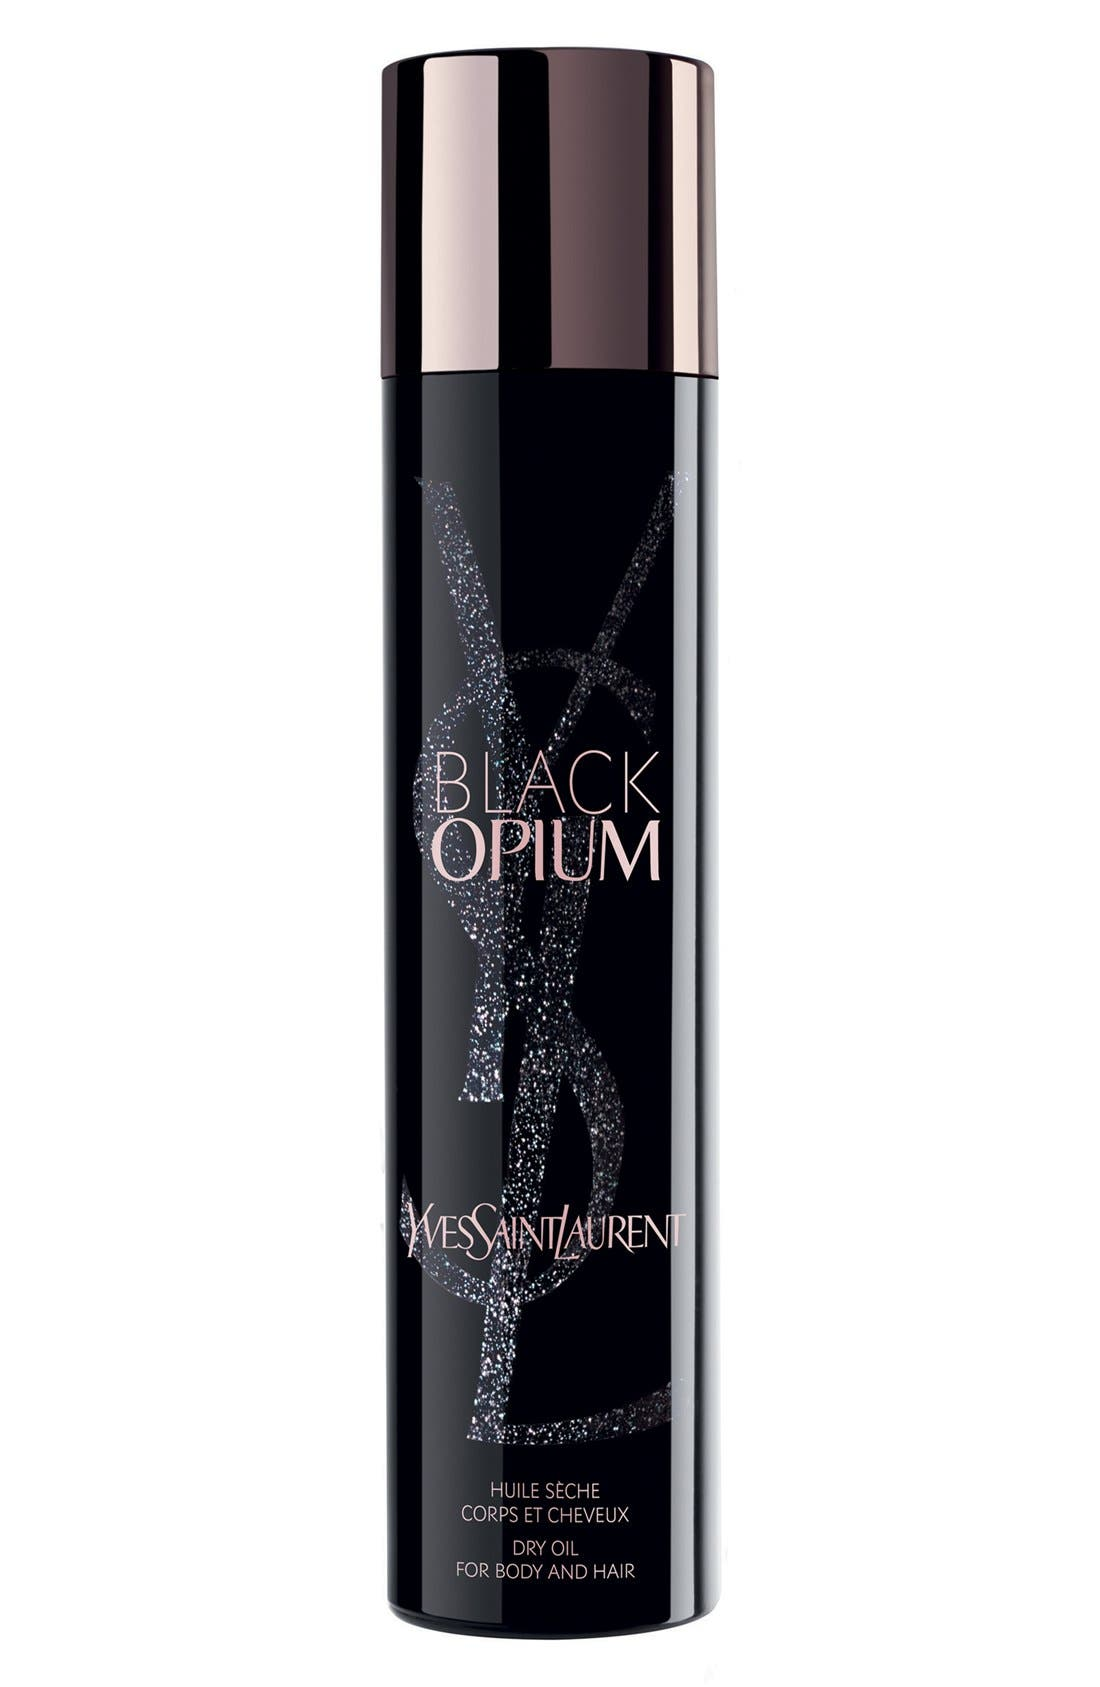 Yves Saint Laurent 'Black Opium' Dry Oil for Body and Hair